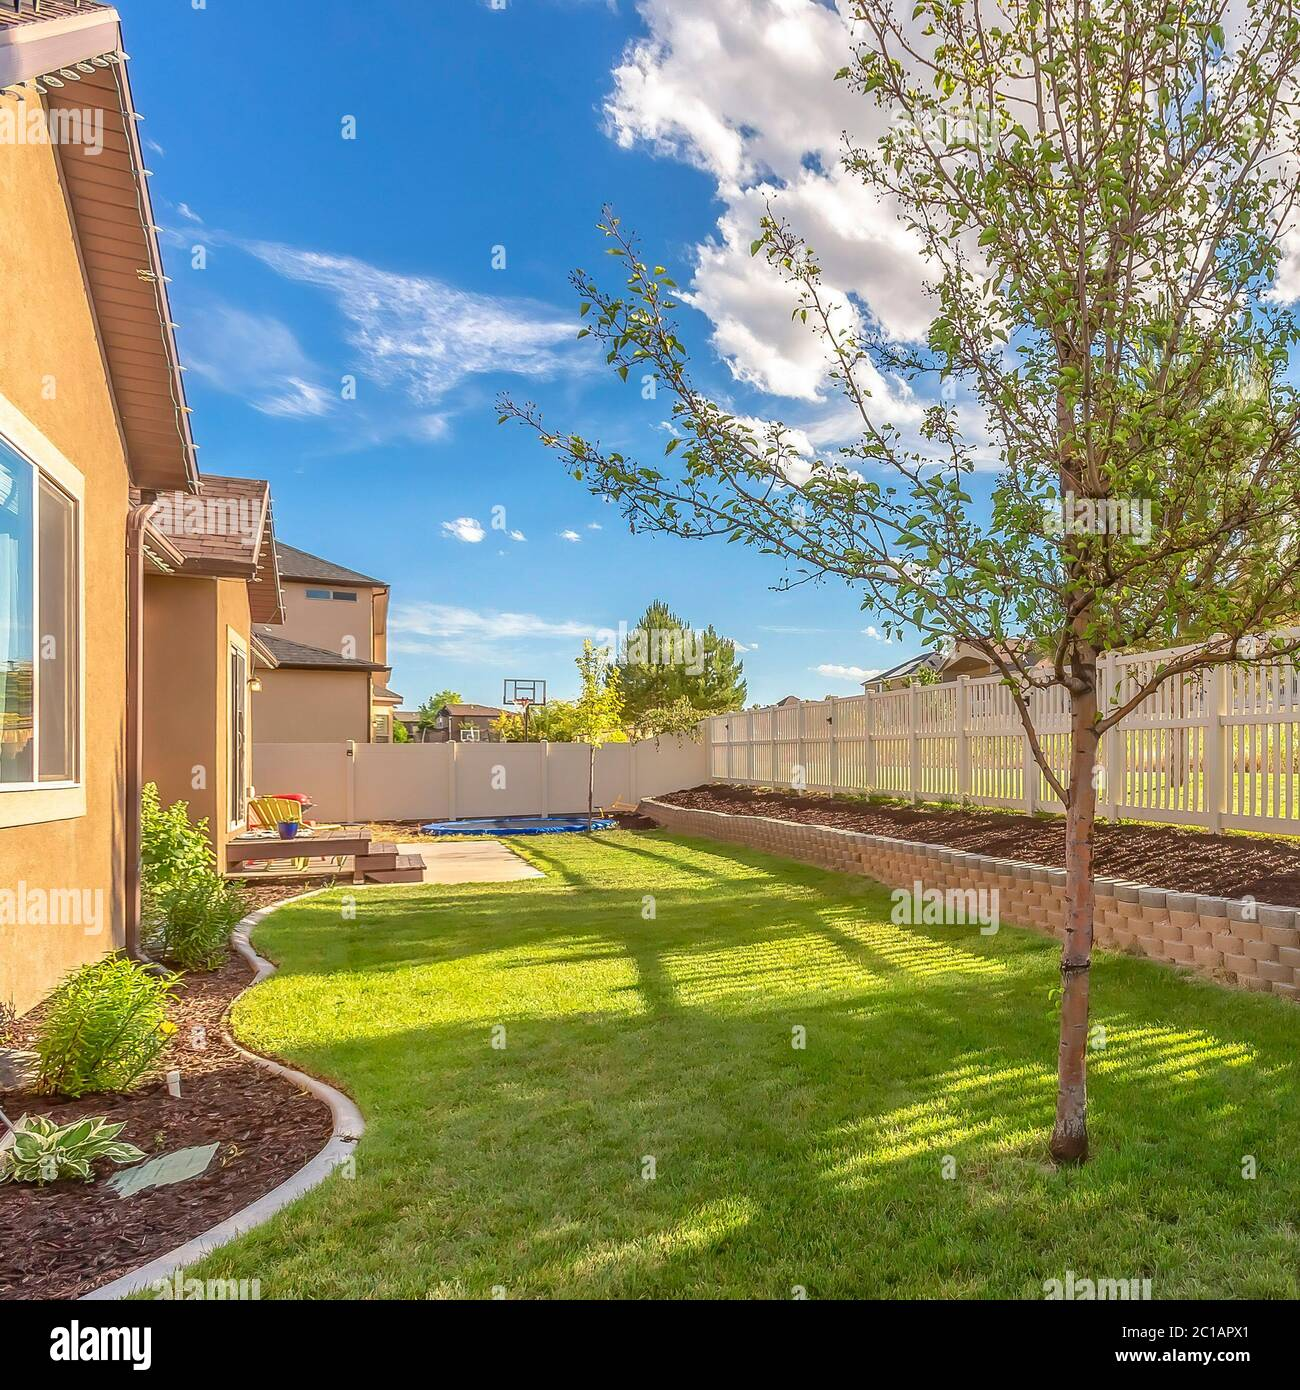 Square Home Backyard With Vibrant Lawn And Raised Planting Bed Along White Picket Fence Stock Photo Alamy